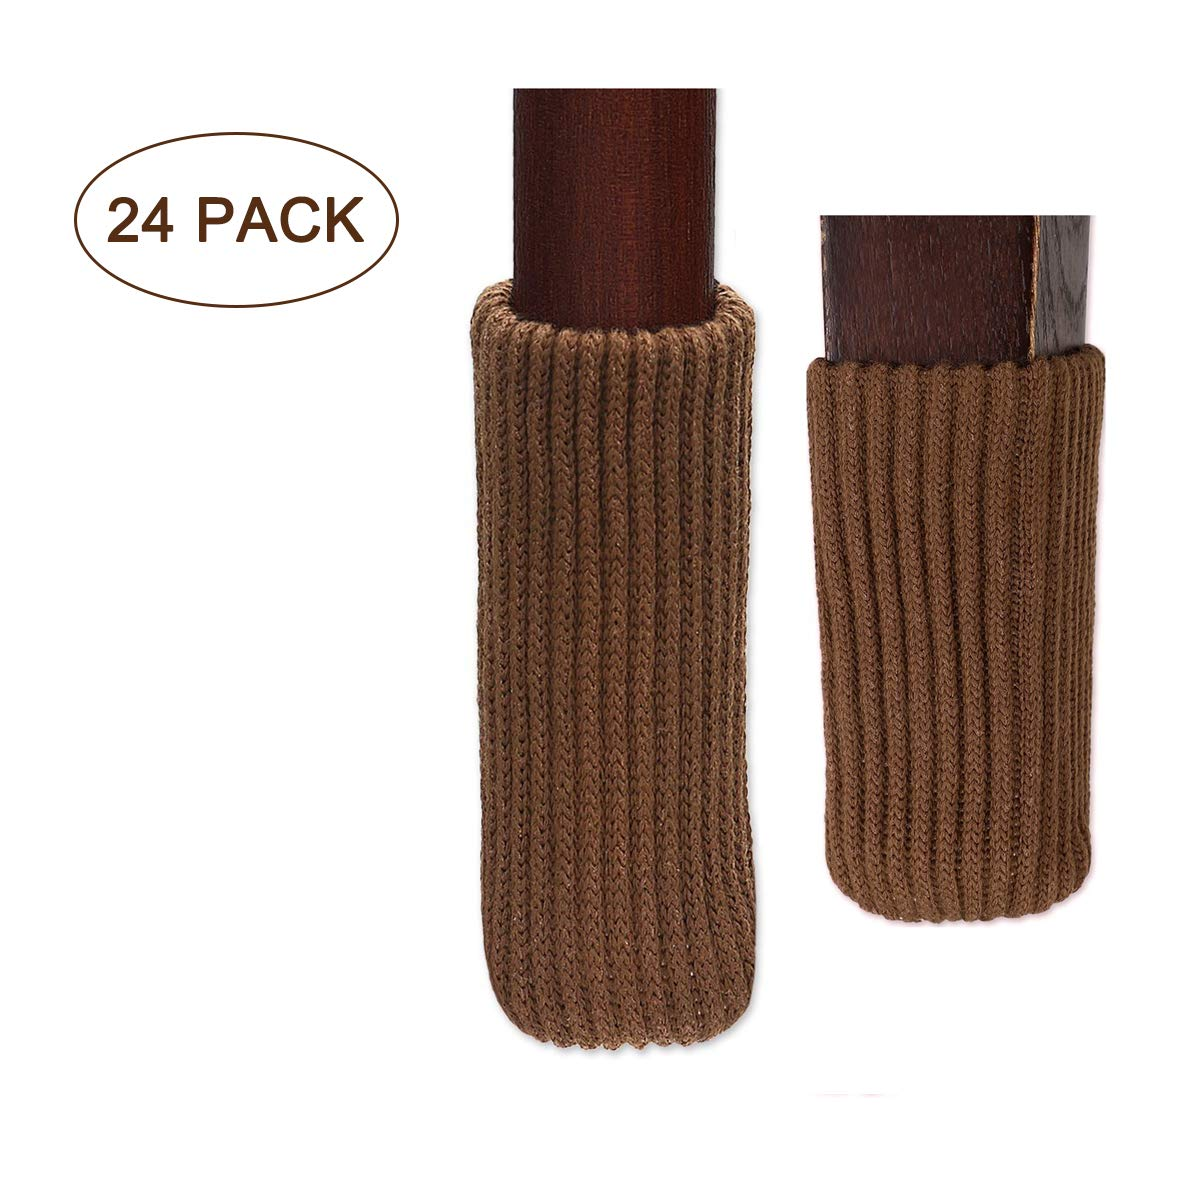 """LimBridge 24pcs Chair Socks, Elastic Wood Floor Furniture Chair Leg Feet Protectors Covers Caps Set, Fit Girth from 4"""" to 7"""", Vertical Knitted Brown"""